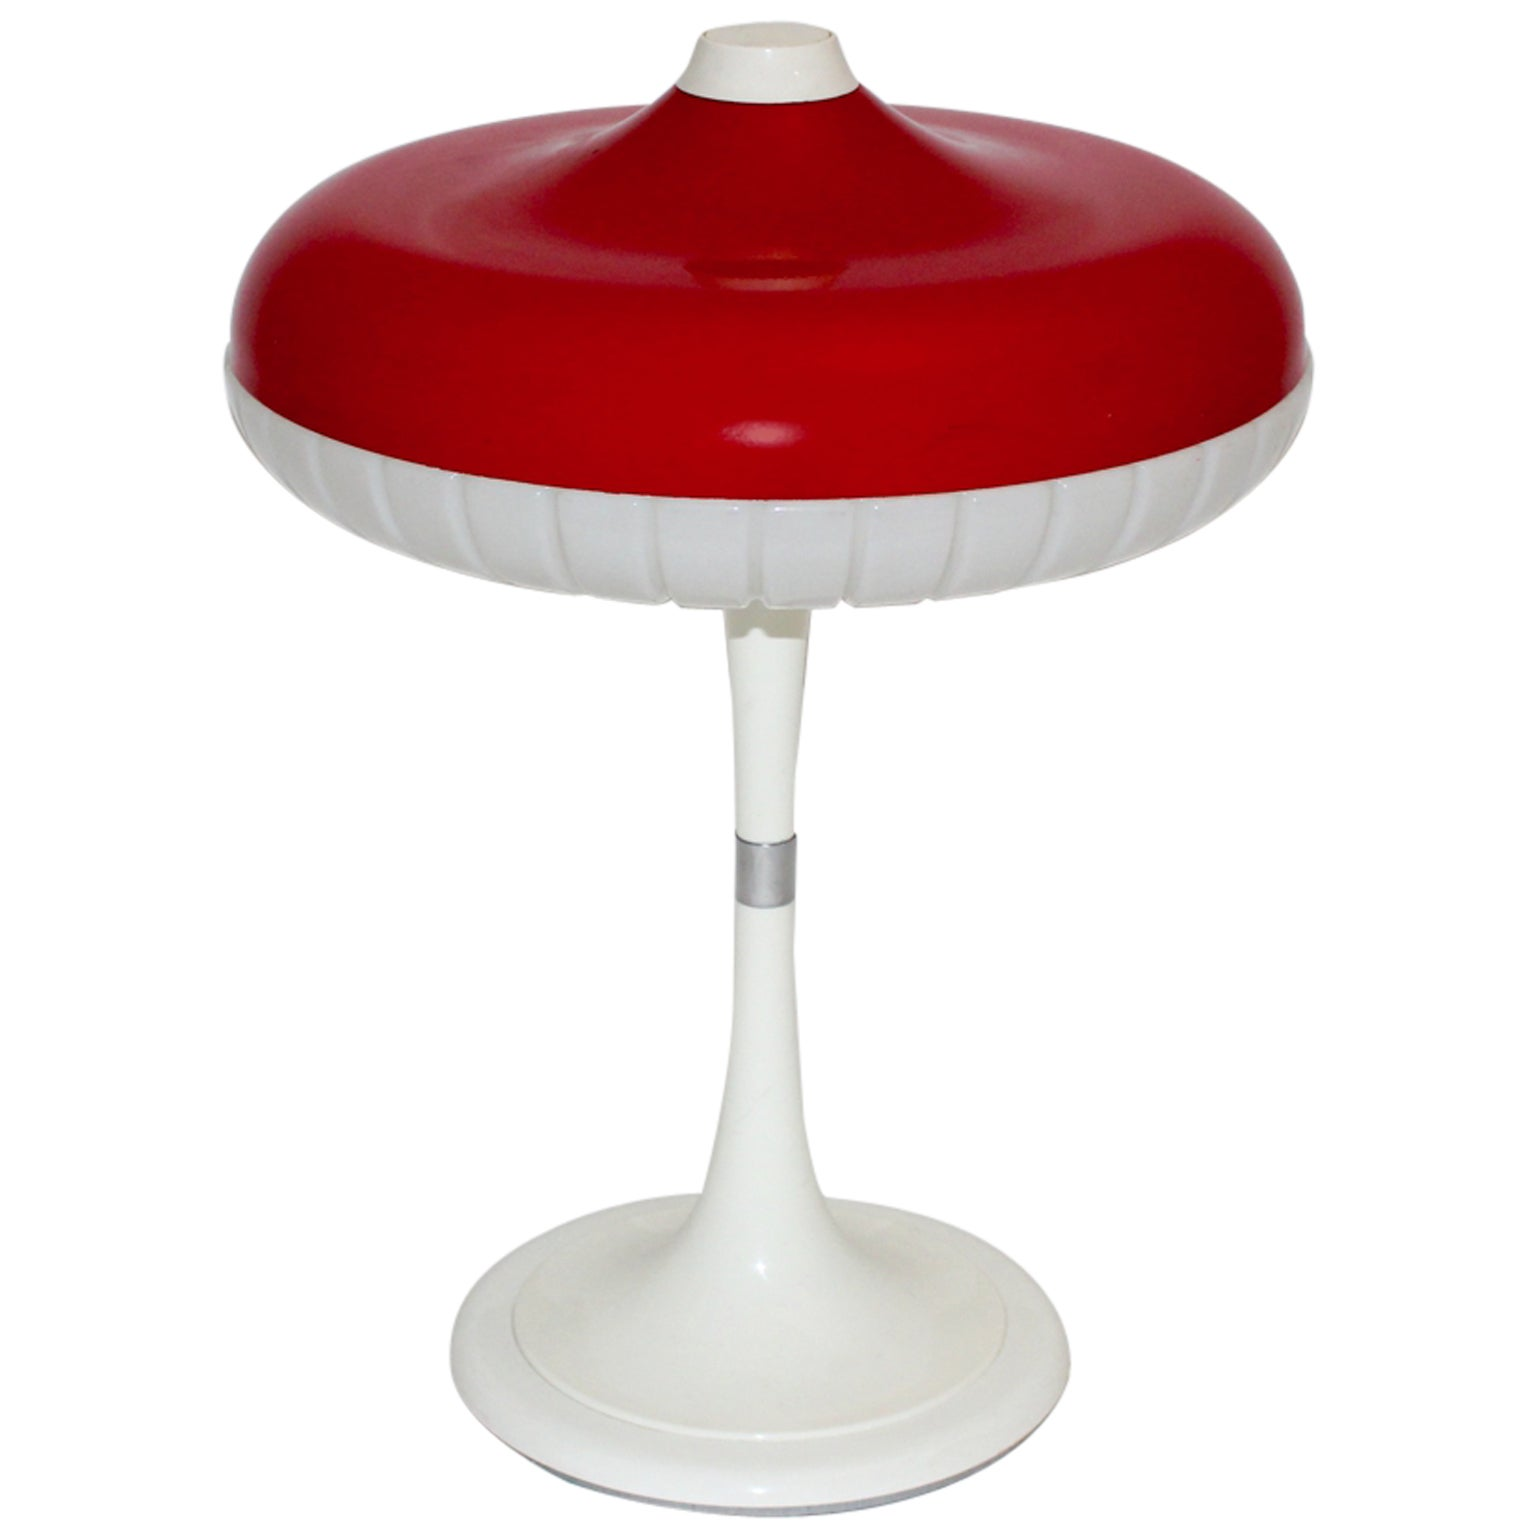 Red White Space Age Pop Art Vintage Table Lamp by Siemens  Germany 1960s